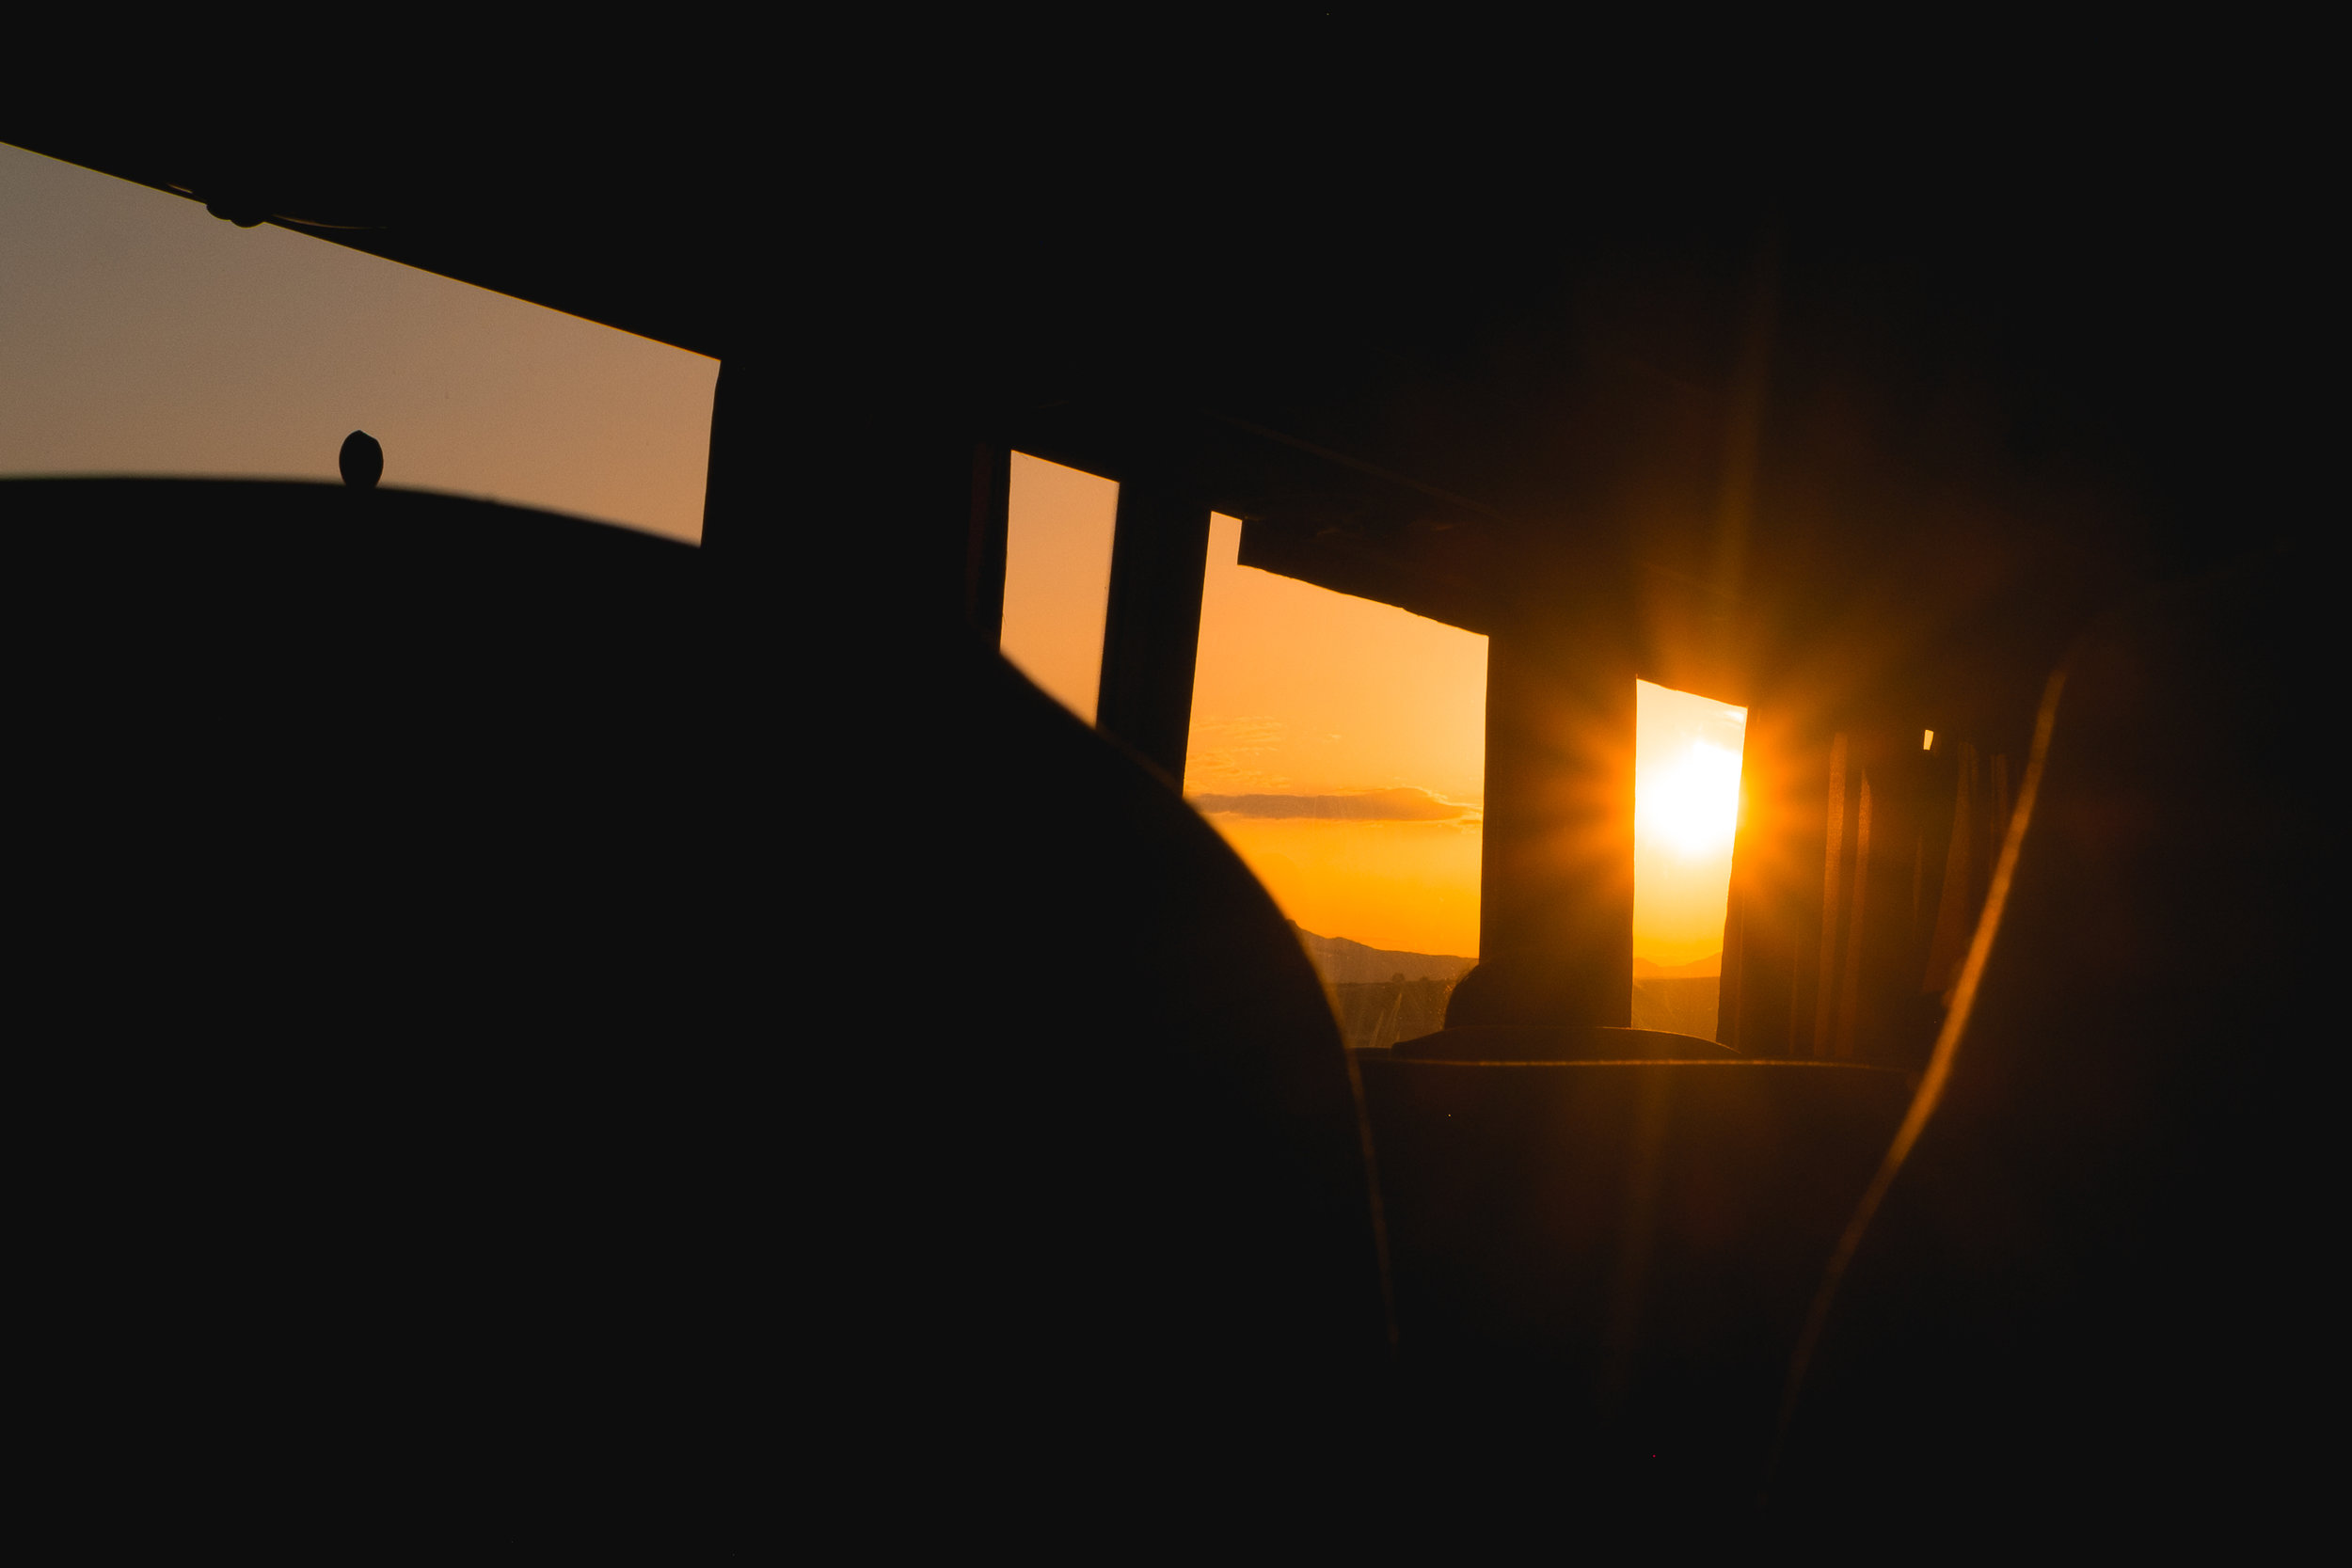 sunset on the bus